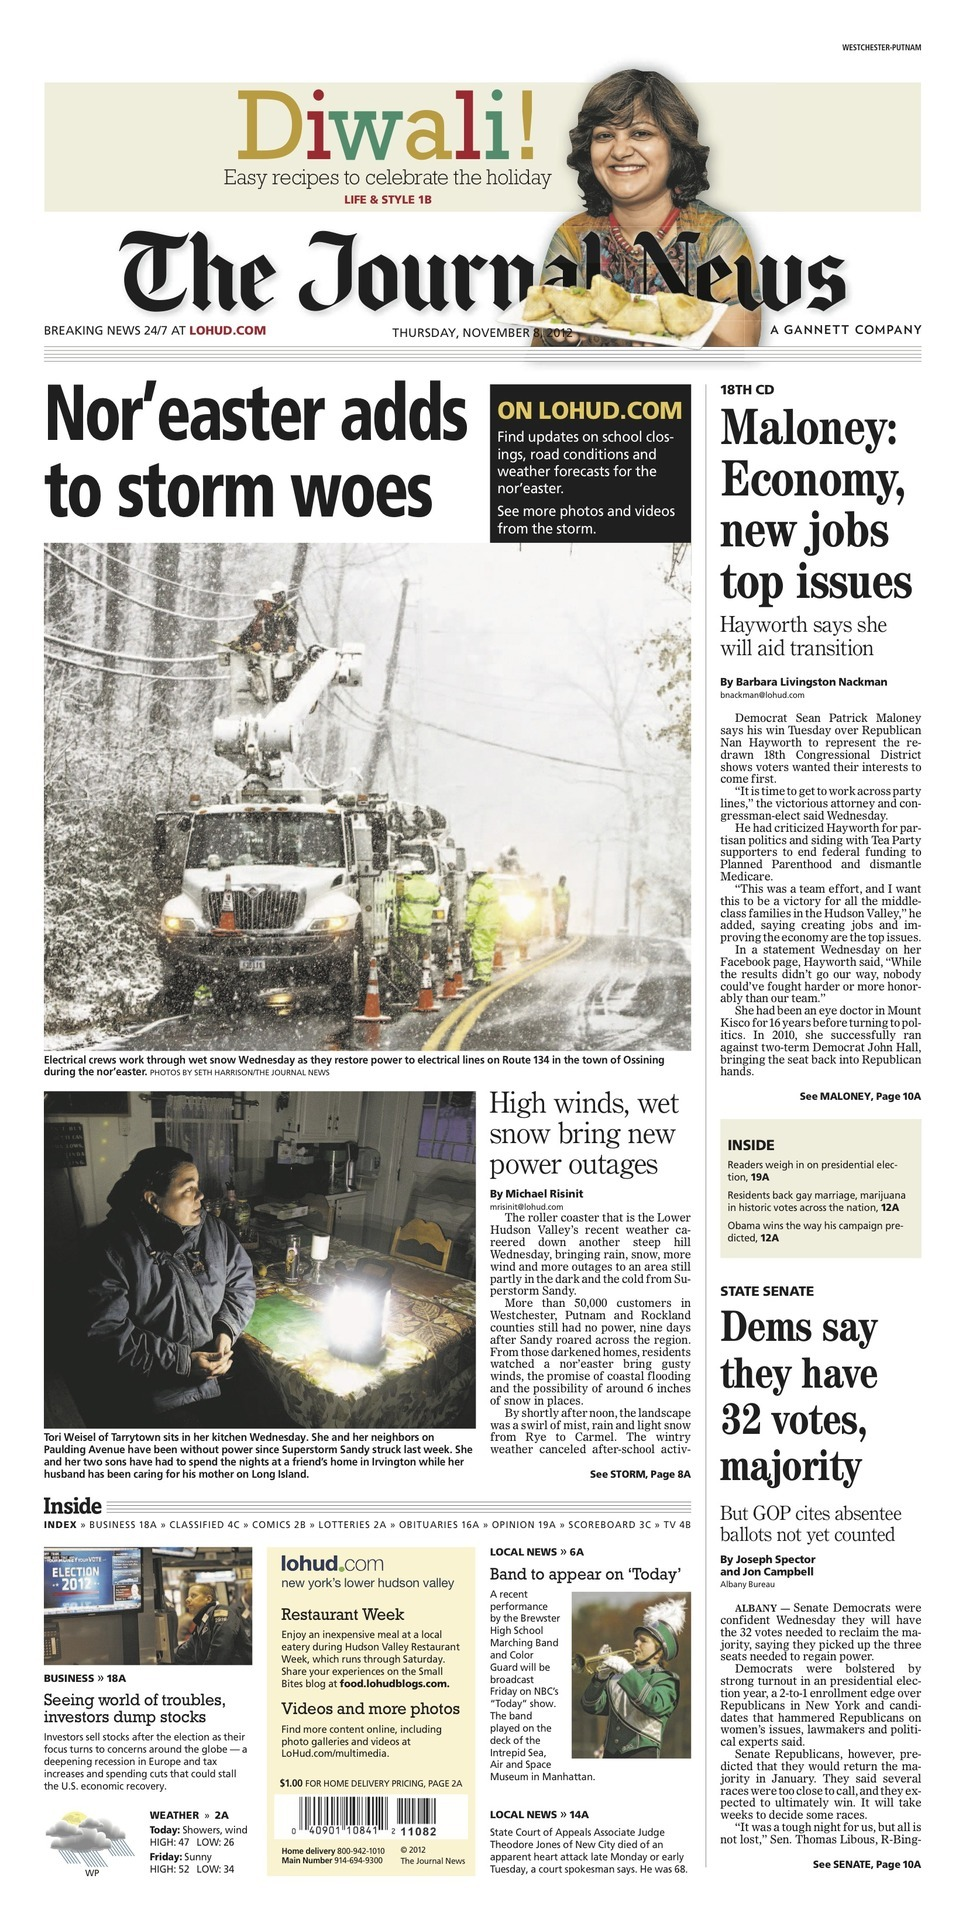 A1 on 11/8/12: Nor'easter adds to storm woes  Maloney: Economy, new jobs top issues  Dems say they have 32 votes, majority